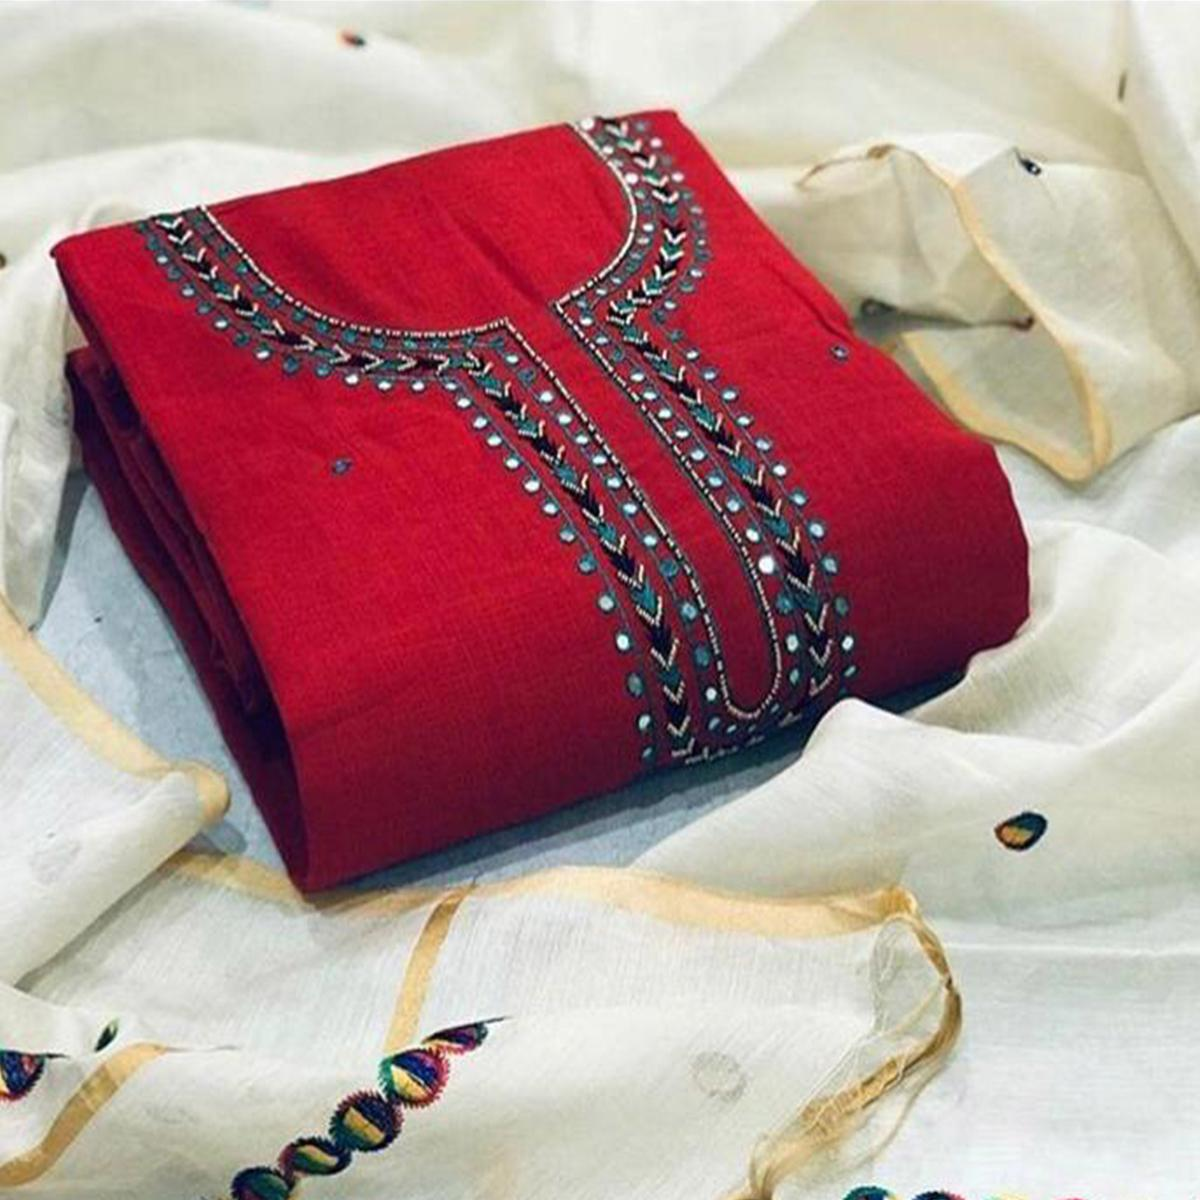 Buy Magnetic Red Colored Partywear Embroidered Cotton Dress Material For Women S Wear Online India Best Prices Affordable Prices Best Price Online Reviews Peachmode